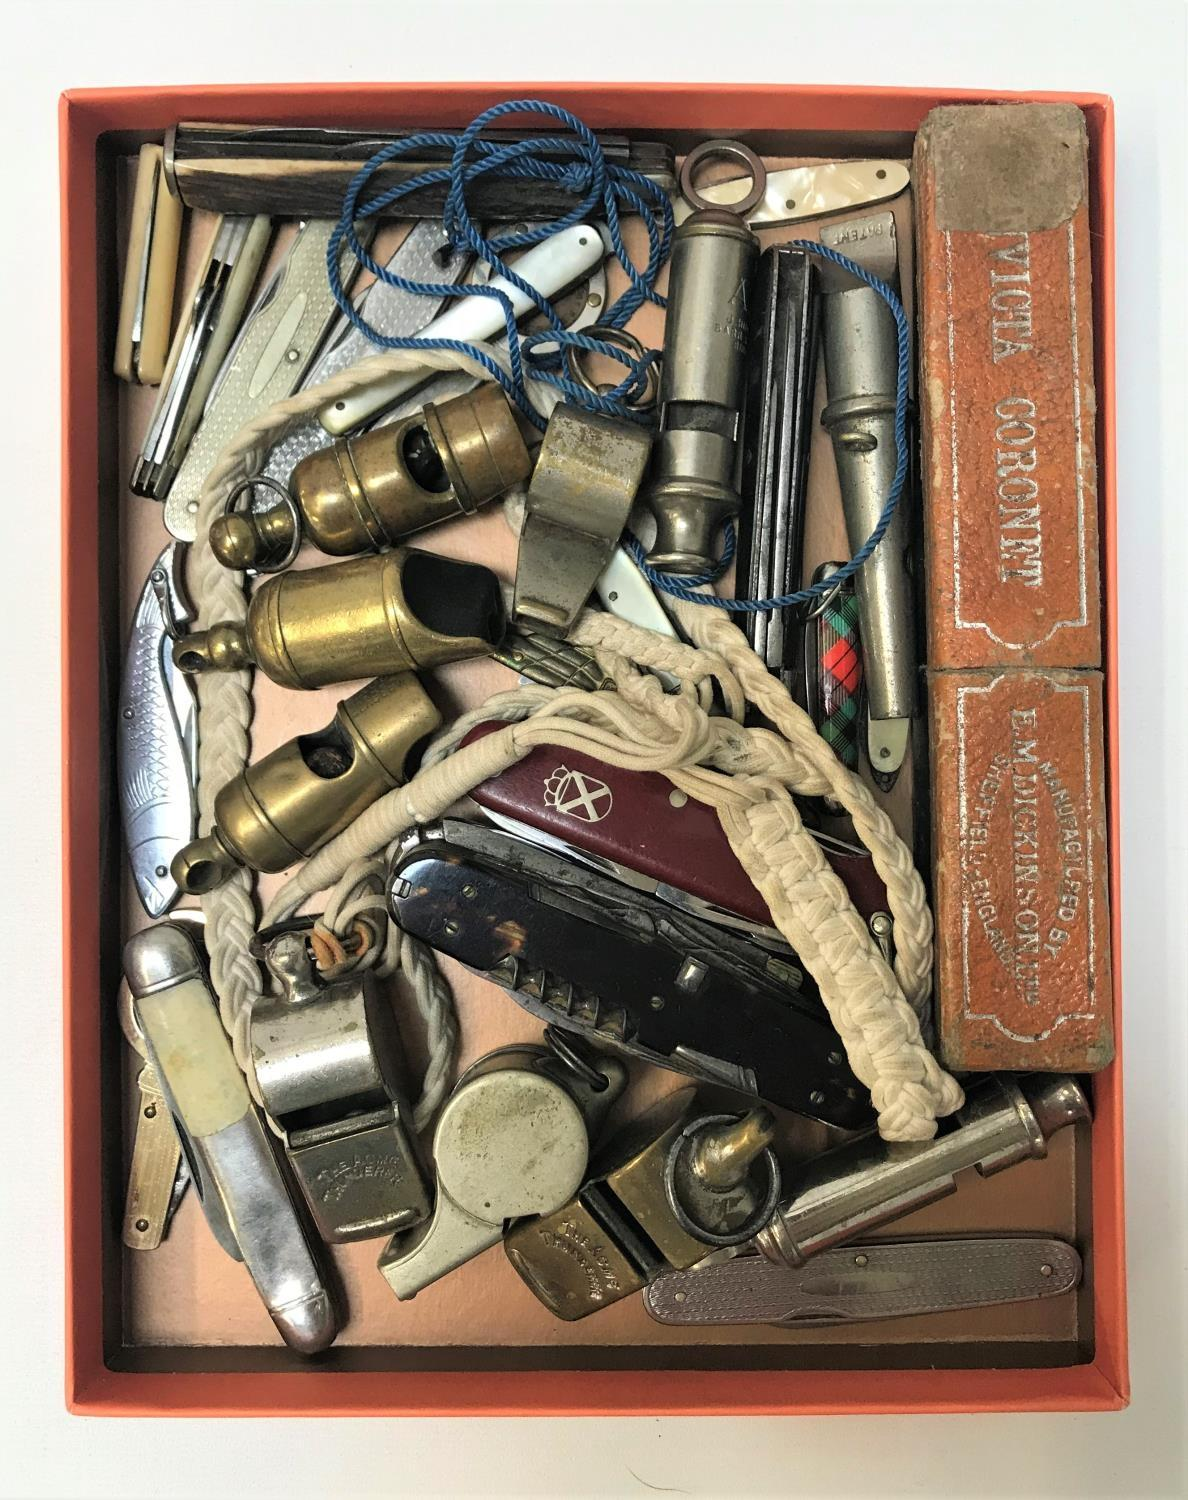 Lot 260 - SELECTION OF WHISTLES AND KNIVES the knives including a Swiss Army multi tool, various fruit and